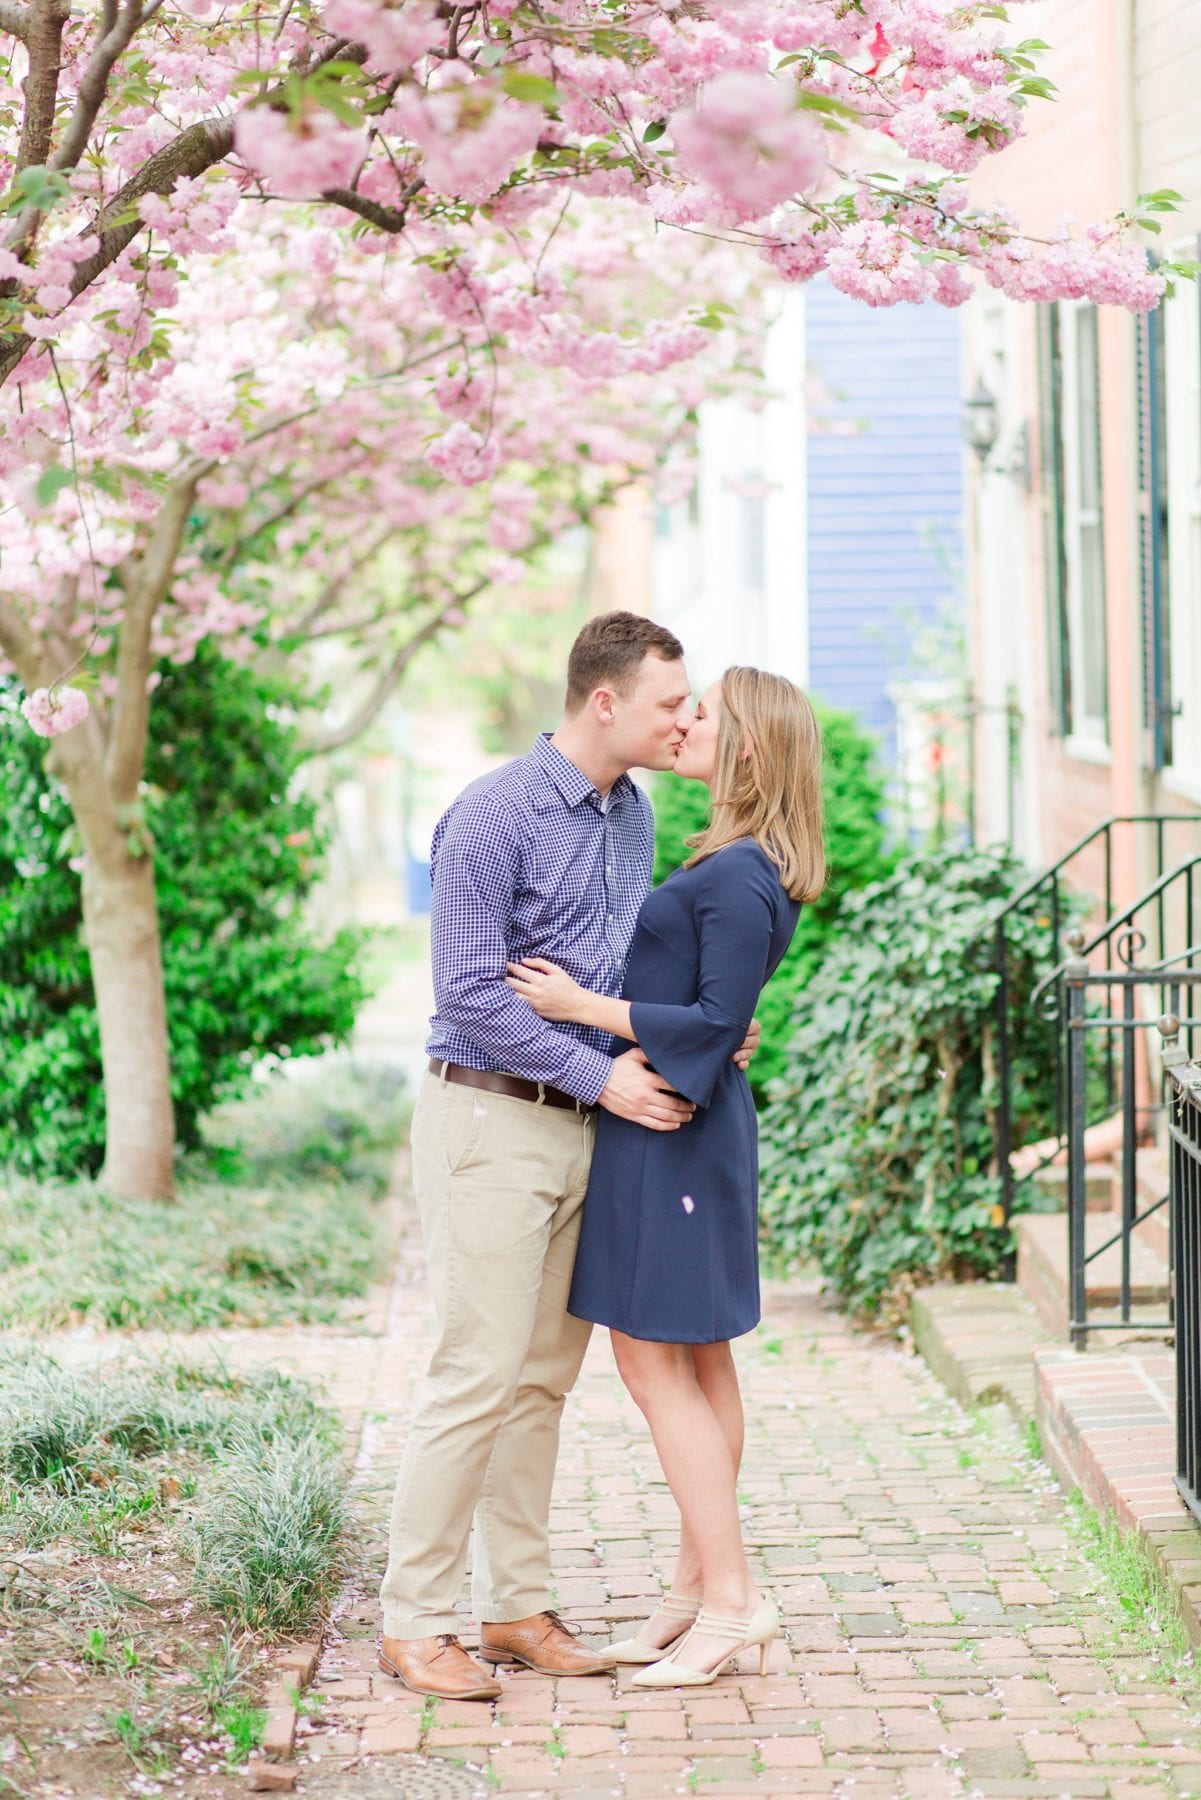 Springtime Old Town Alexandria Engagement Session Matt & Maxie Megan Kelsey Photography-50.jpg